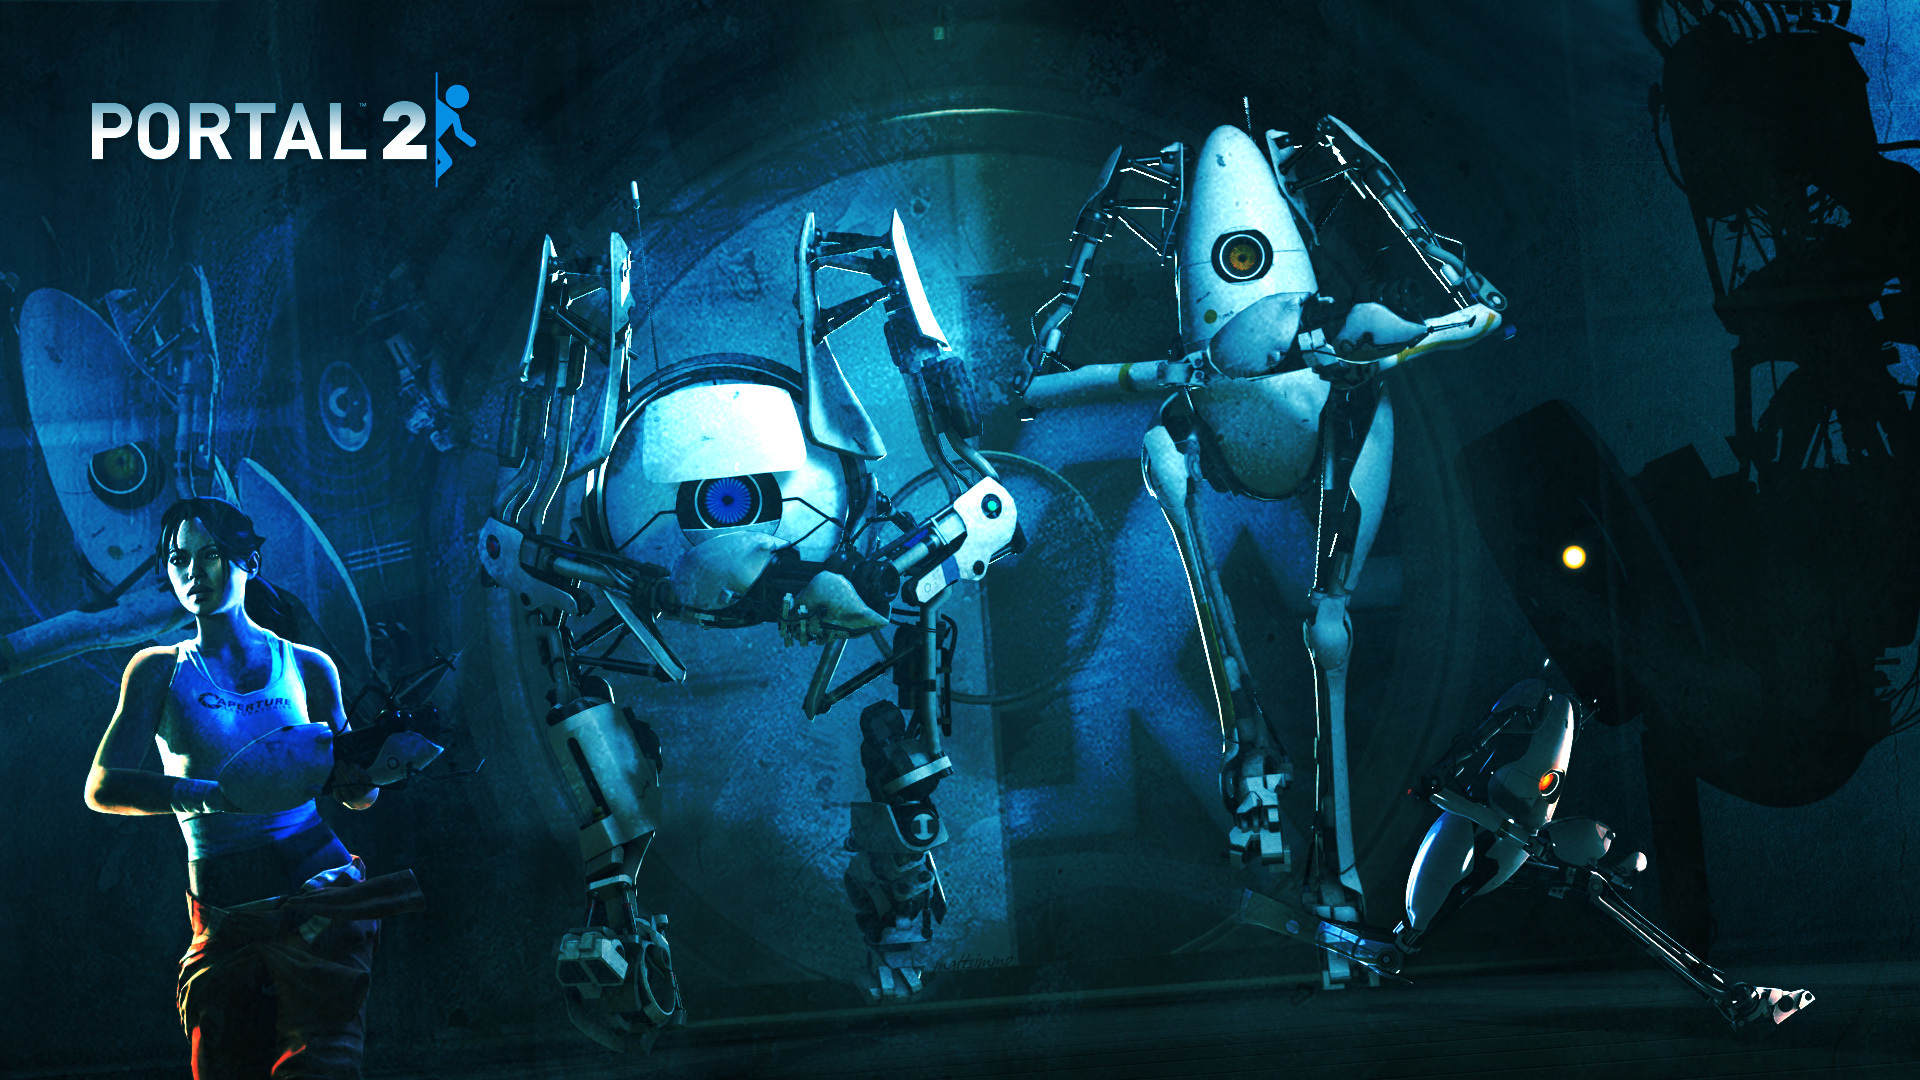 valve corporation portal 2 HD Wallpaper